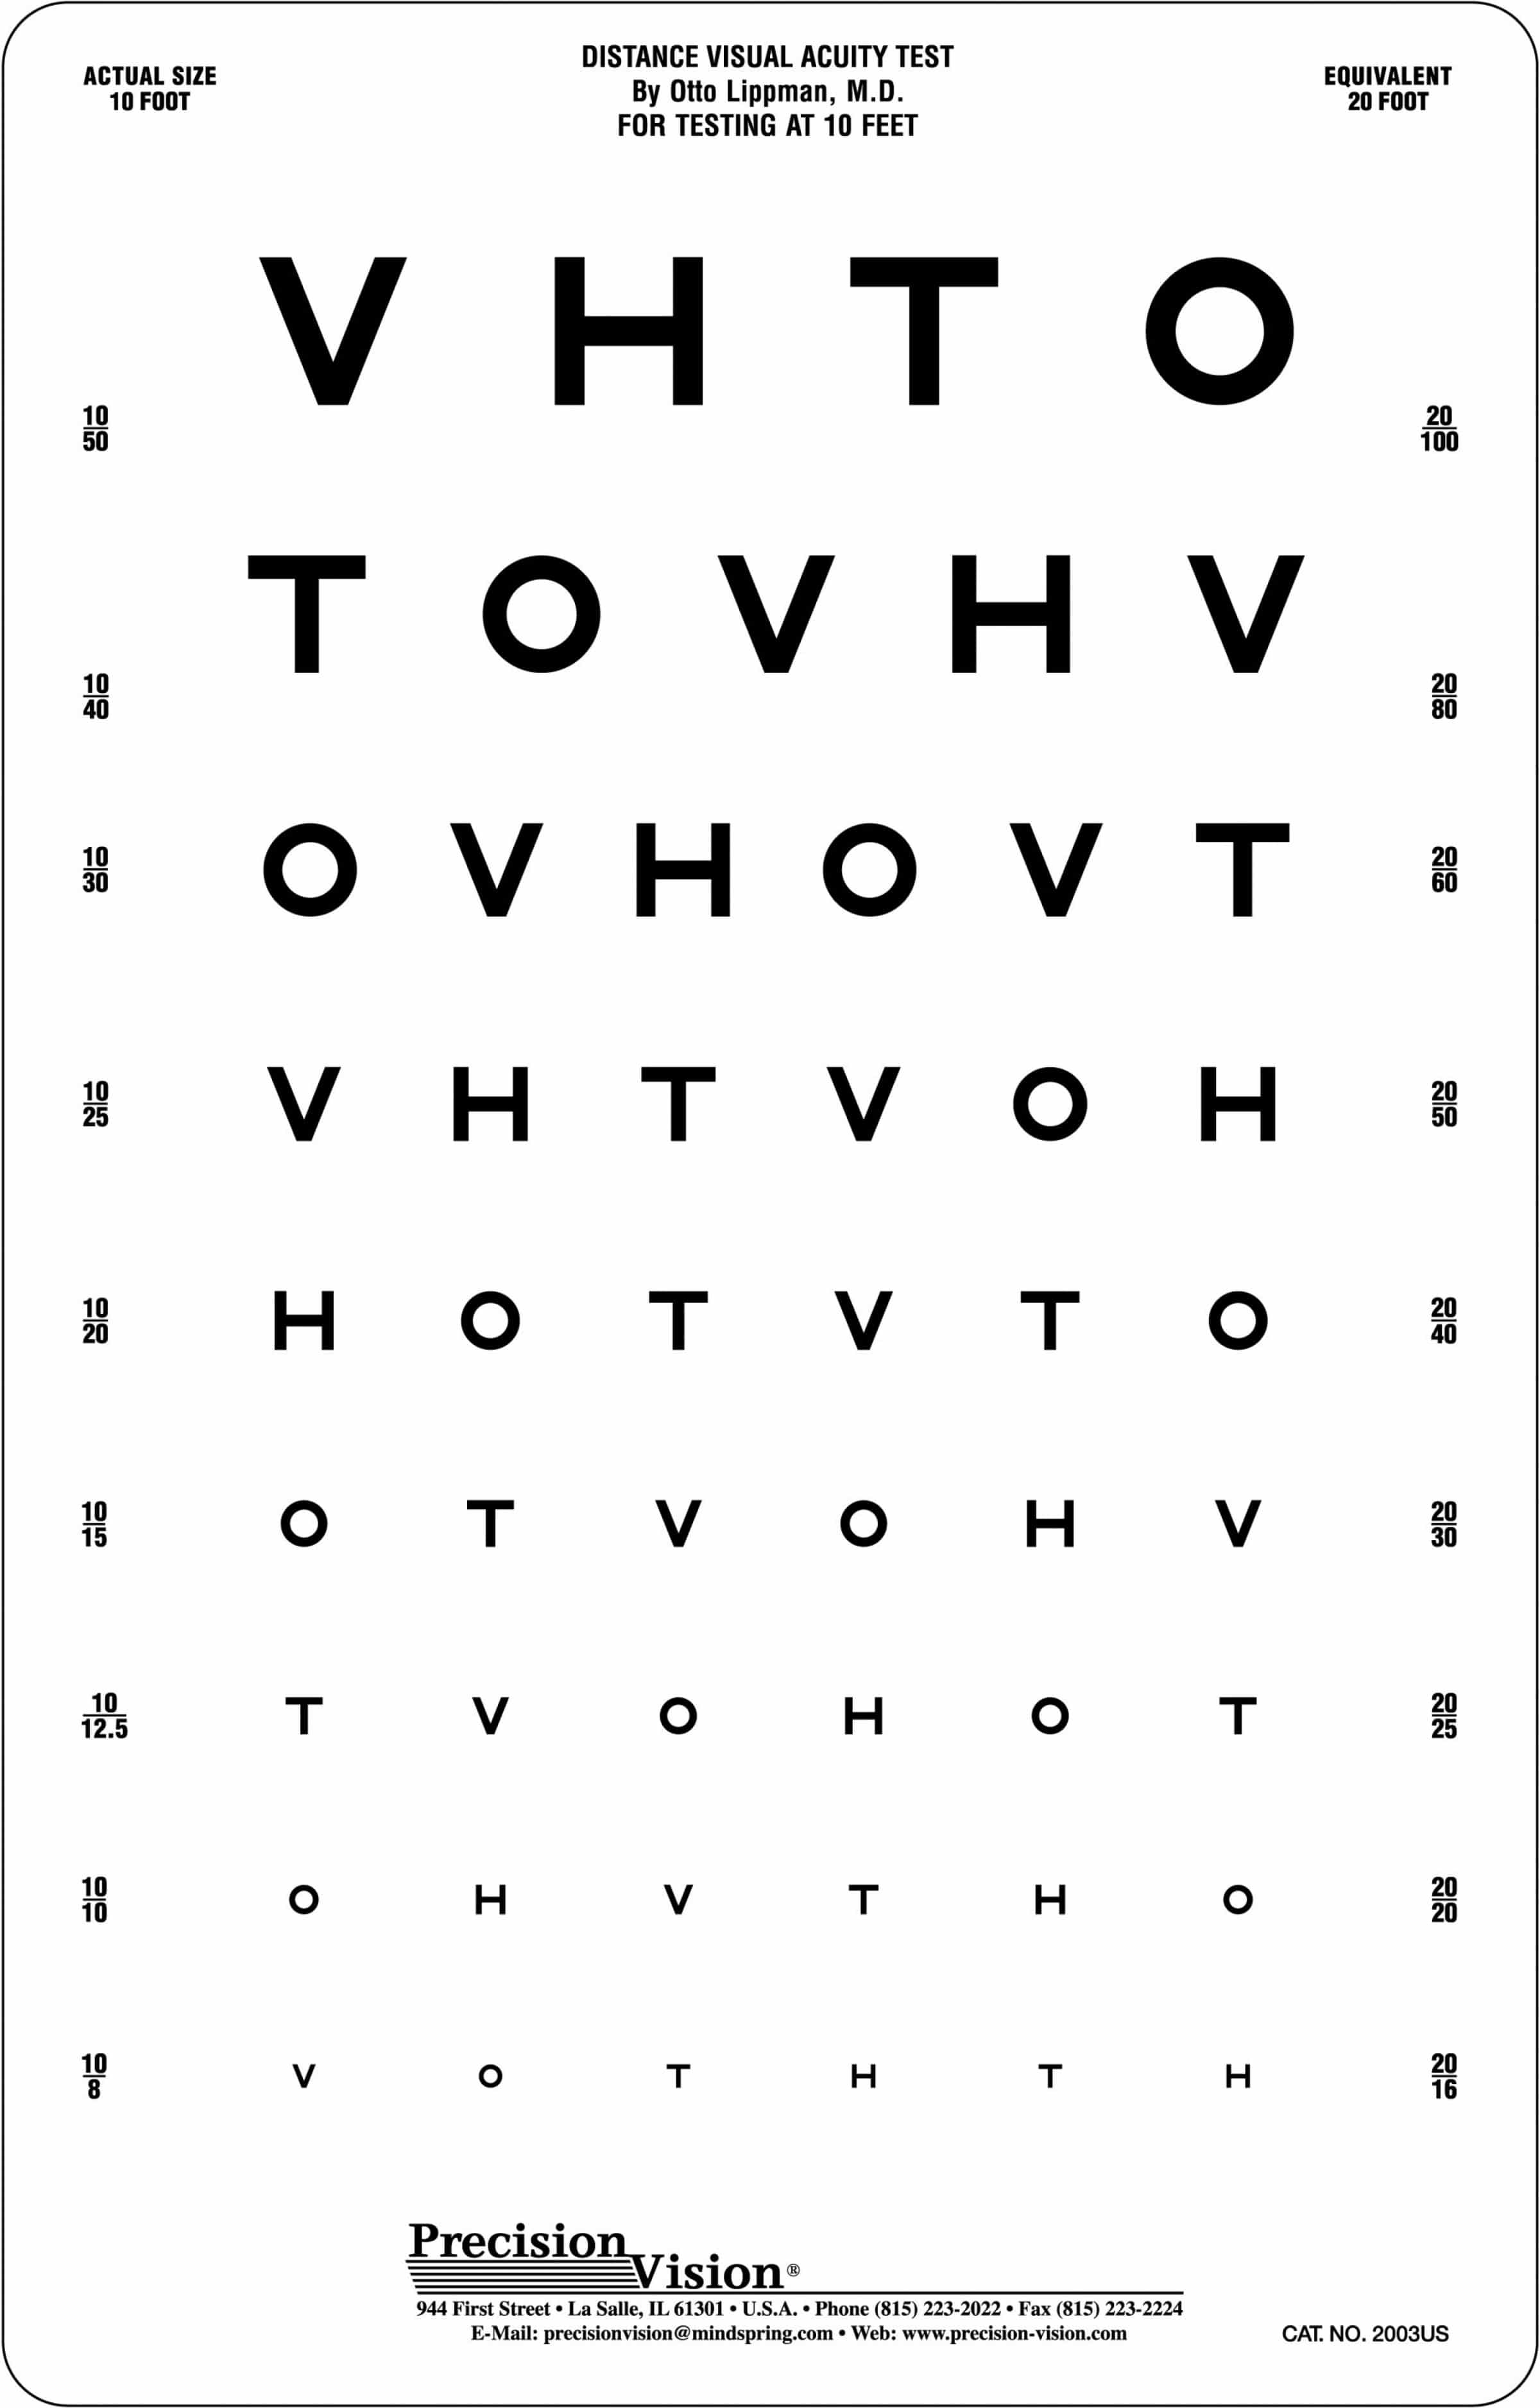 Hotv interaction bar distance eye chart 10ft precision vision 1725 add to cart nvjuhfo Choice Image